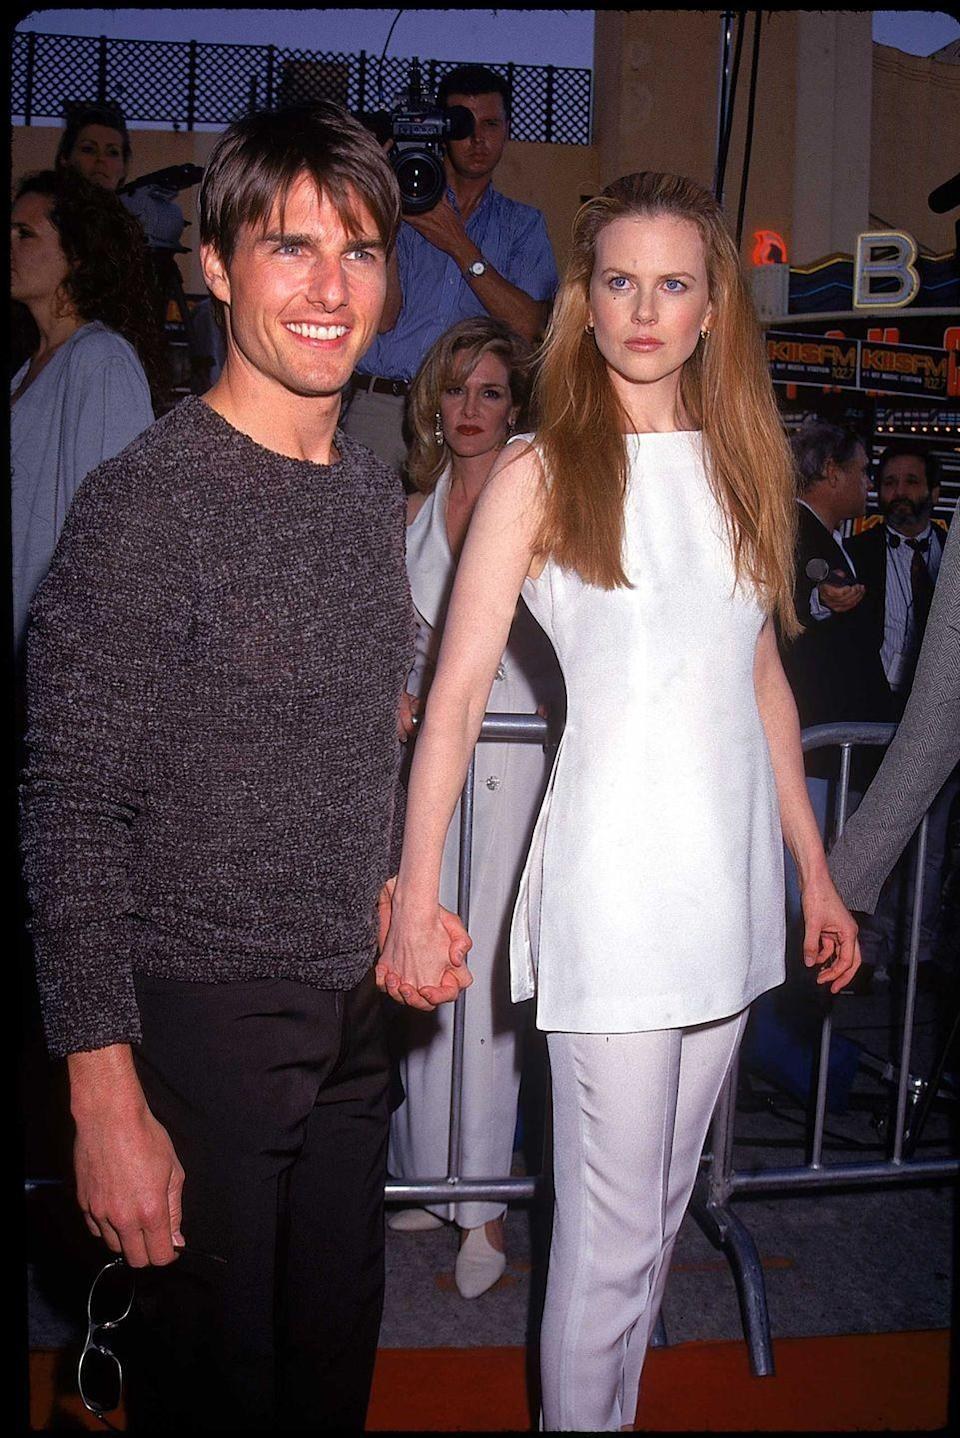 <p>Here's a reminder that Tom Cruise and Nicole Kidman were married, seen here in 1996 at Cruise's <em>Mission Impossible</em> premiere. </p>